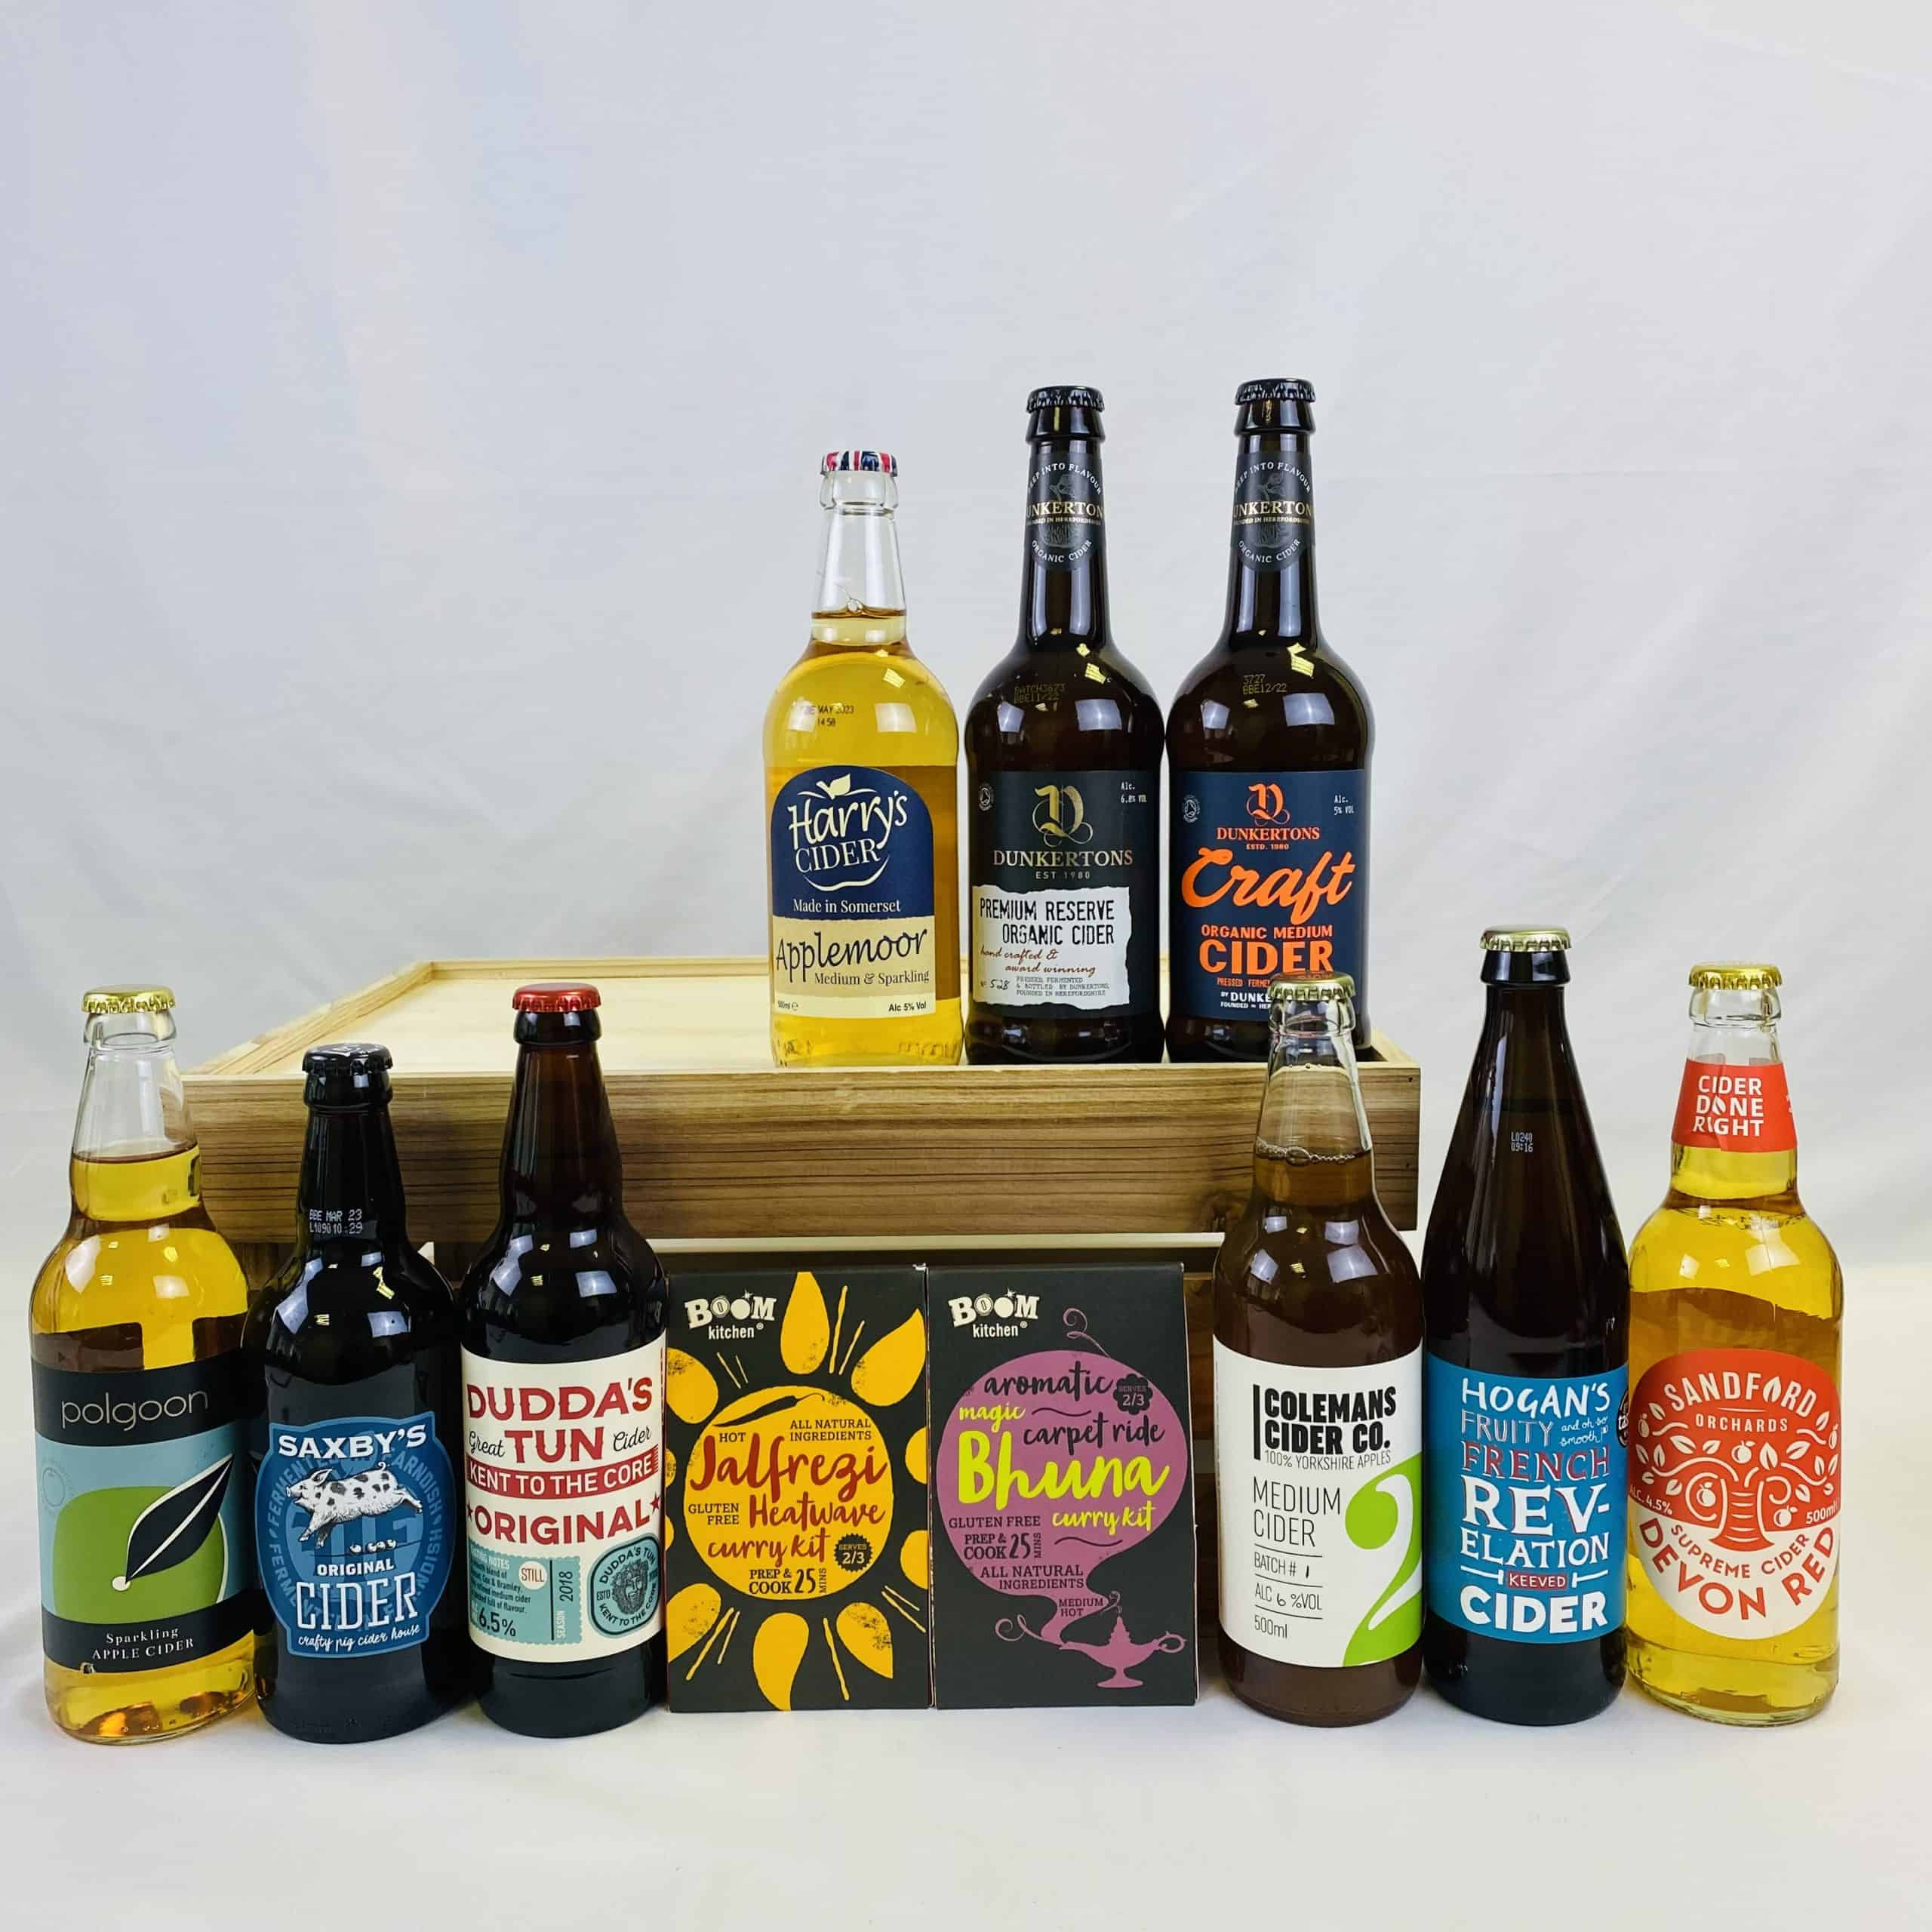 9medciders2curries